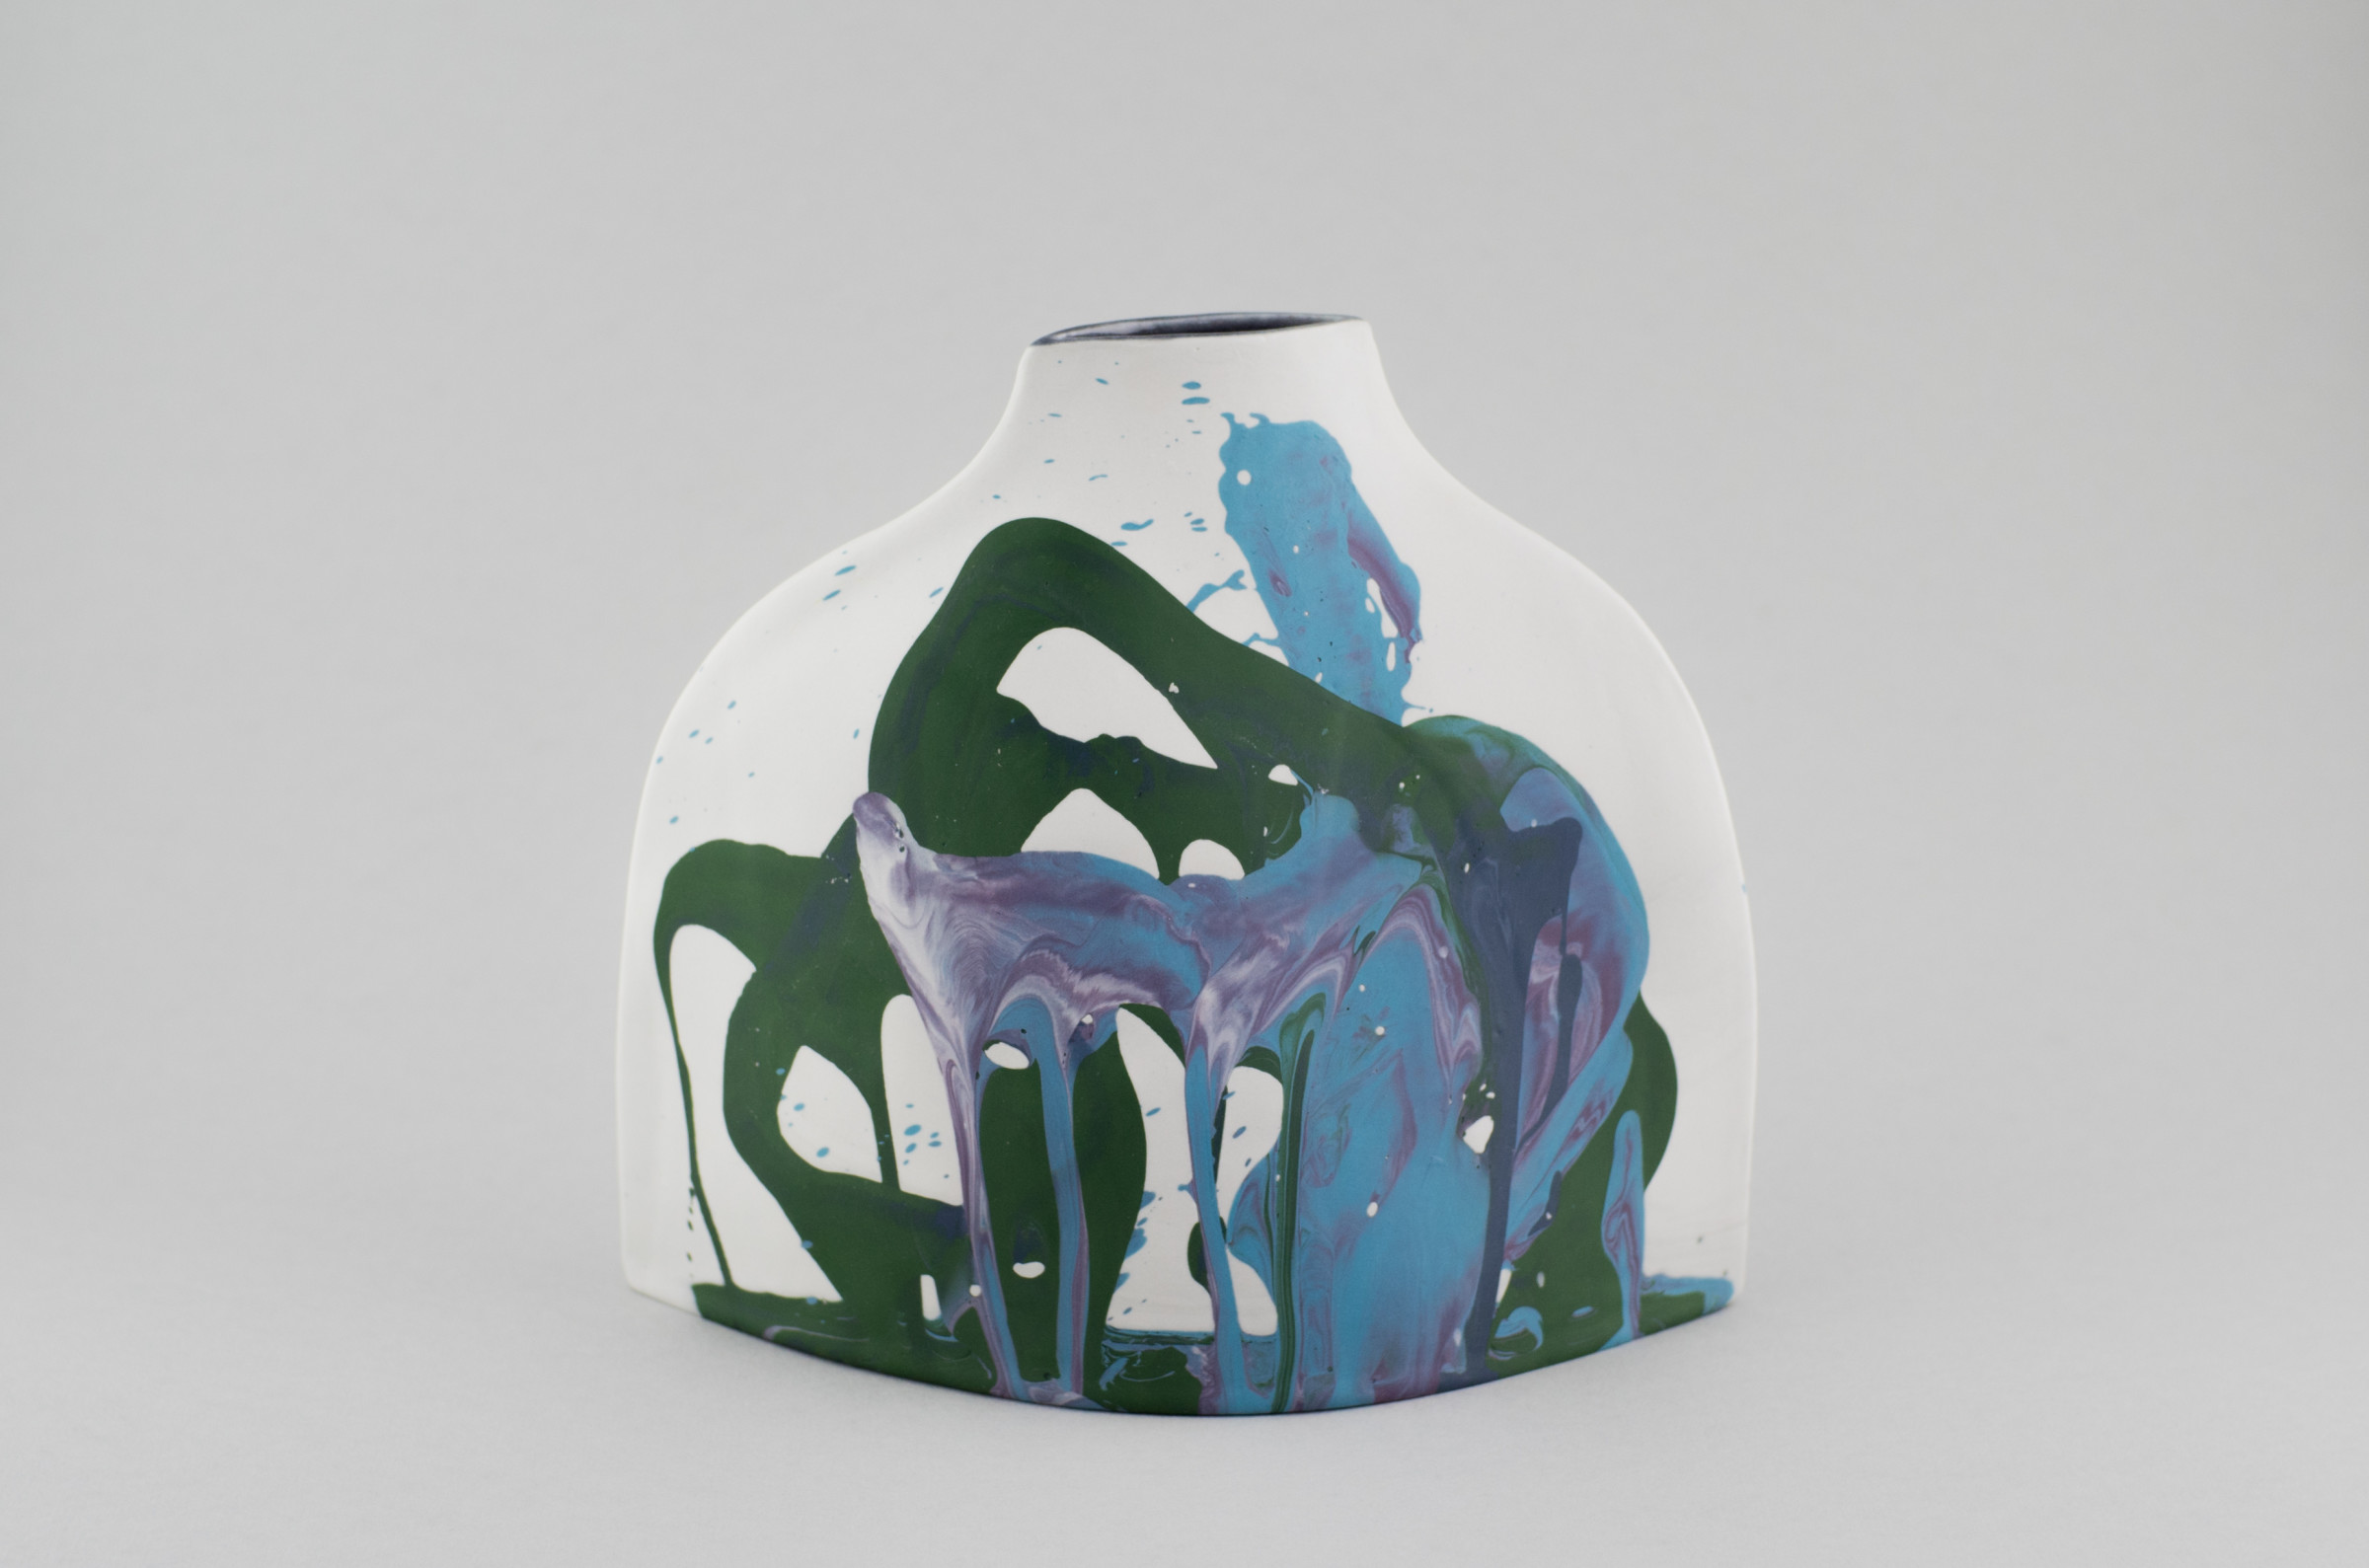 "<span class=""link fancybox-details-link""><a href=""/artists/219-james-pegg/works/6783-james-pegg-shoulder-vase-2019/"">View Detail Page</a></span><div class=""artist""><strong>James Pegg</strong></div> <div class=""title""><em>Shoulder Vase</em>, 2019</div> <div class=""medium"">action-cast stained porcelain with glazed interior <br />  (in collaboration with Lucia Fraser)</div> <div class=""dimensions"">h 20 cm x w 17.5 cm</div><div class=""price"">£205.00</div><div class=""copyright_line"">OwnArt: £ 20.50 x 10 Months, 0% APR </div>"